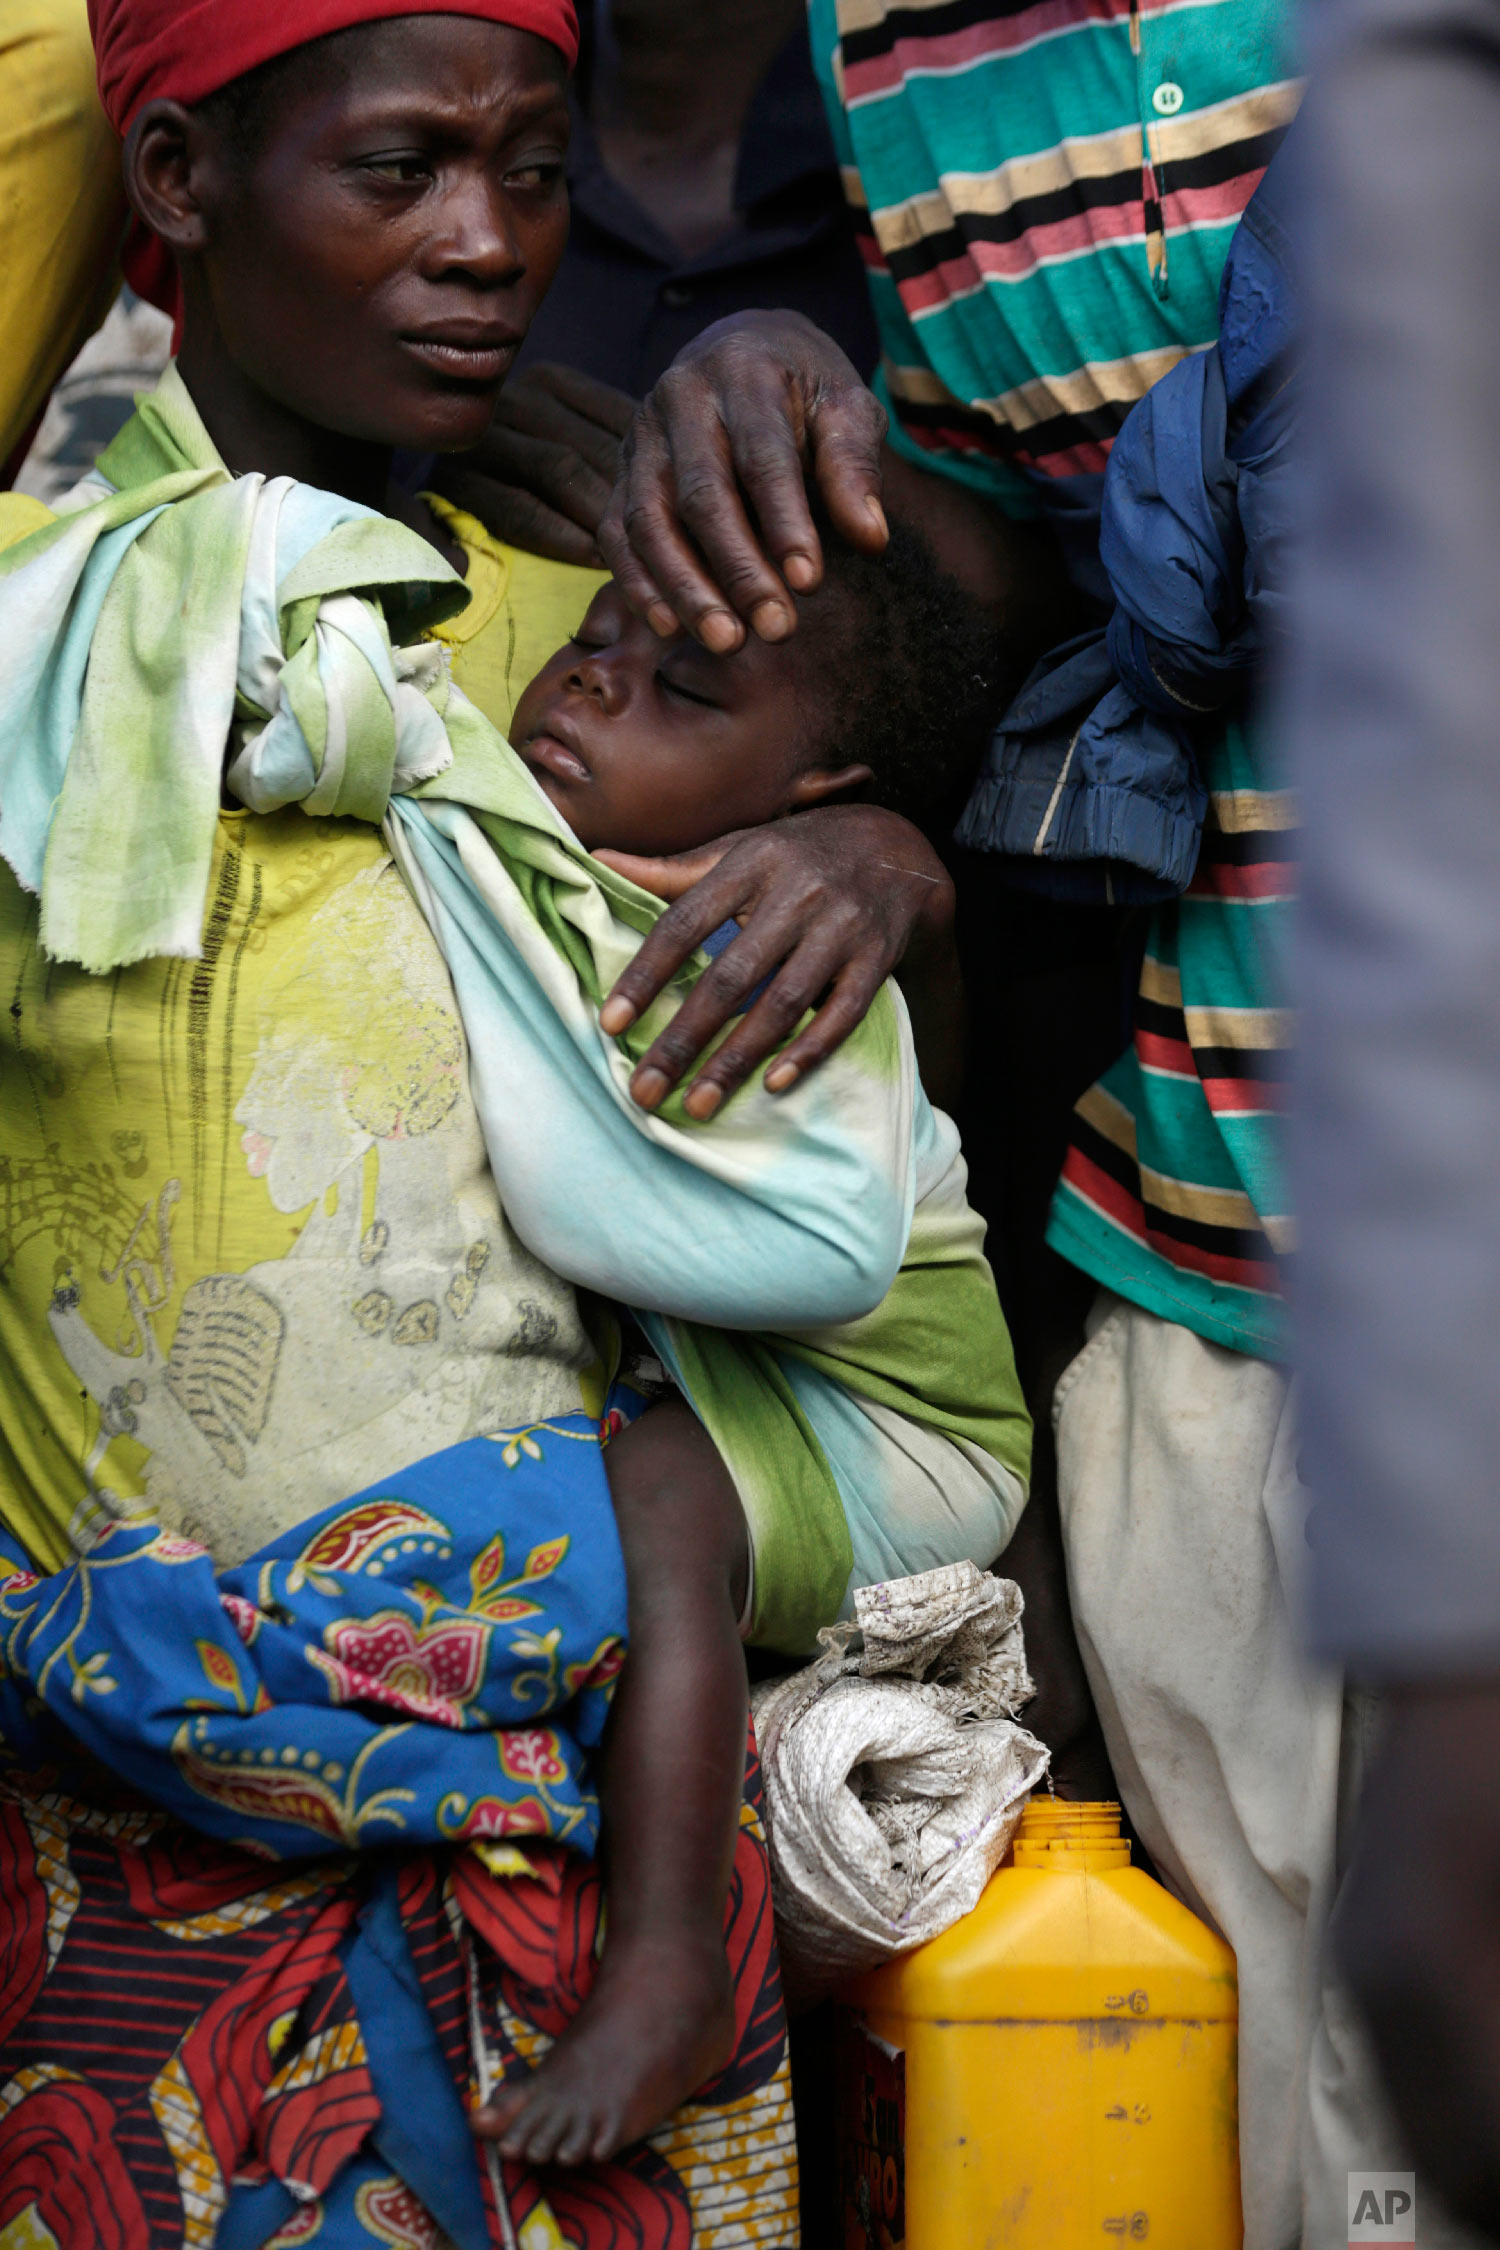 A woman carrying her child stands in a queue to receive food from World Food Programme in Nhamatanda, about 100km west of Beira, Mozambique Thursday, March 21, 2019. (AP Photo/Themba Hadebe)